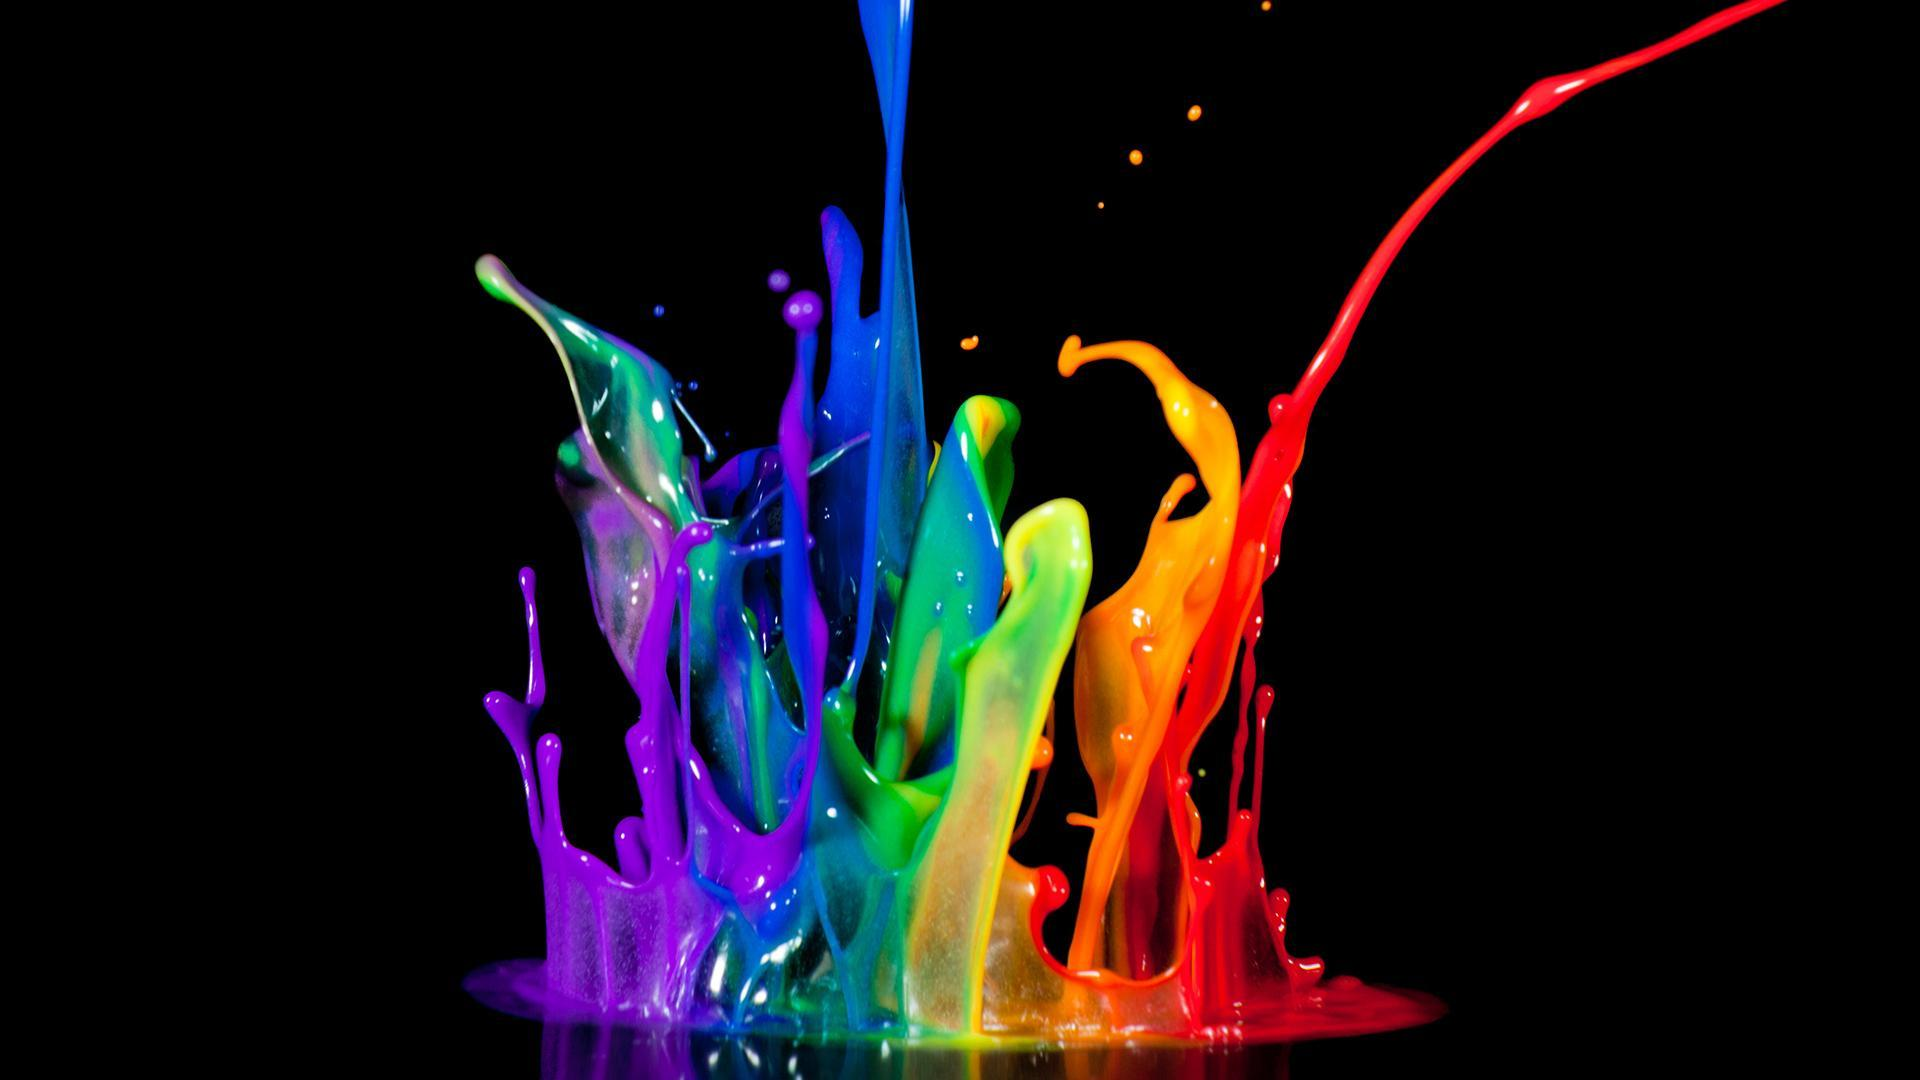 Hd wallpaper colour - Wallpapers For Color Splash Background Hd